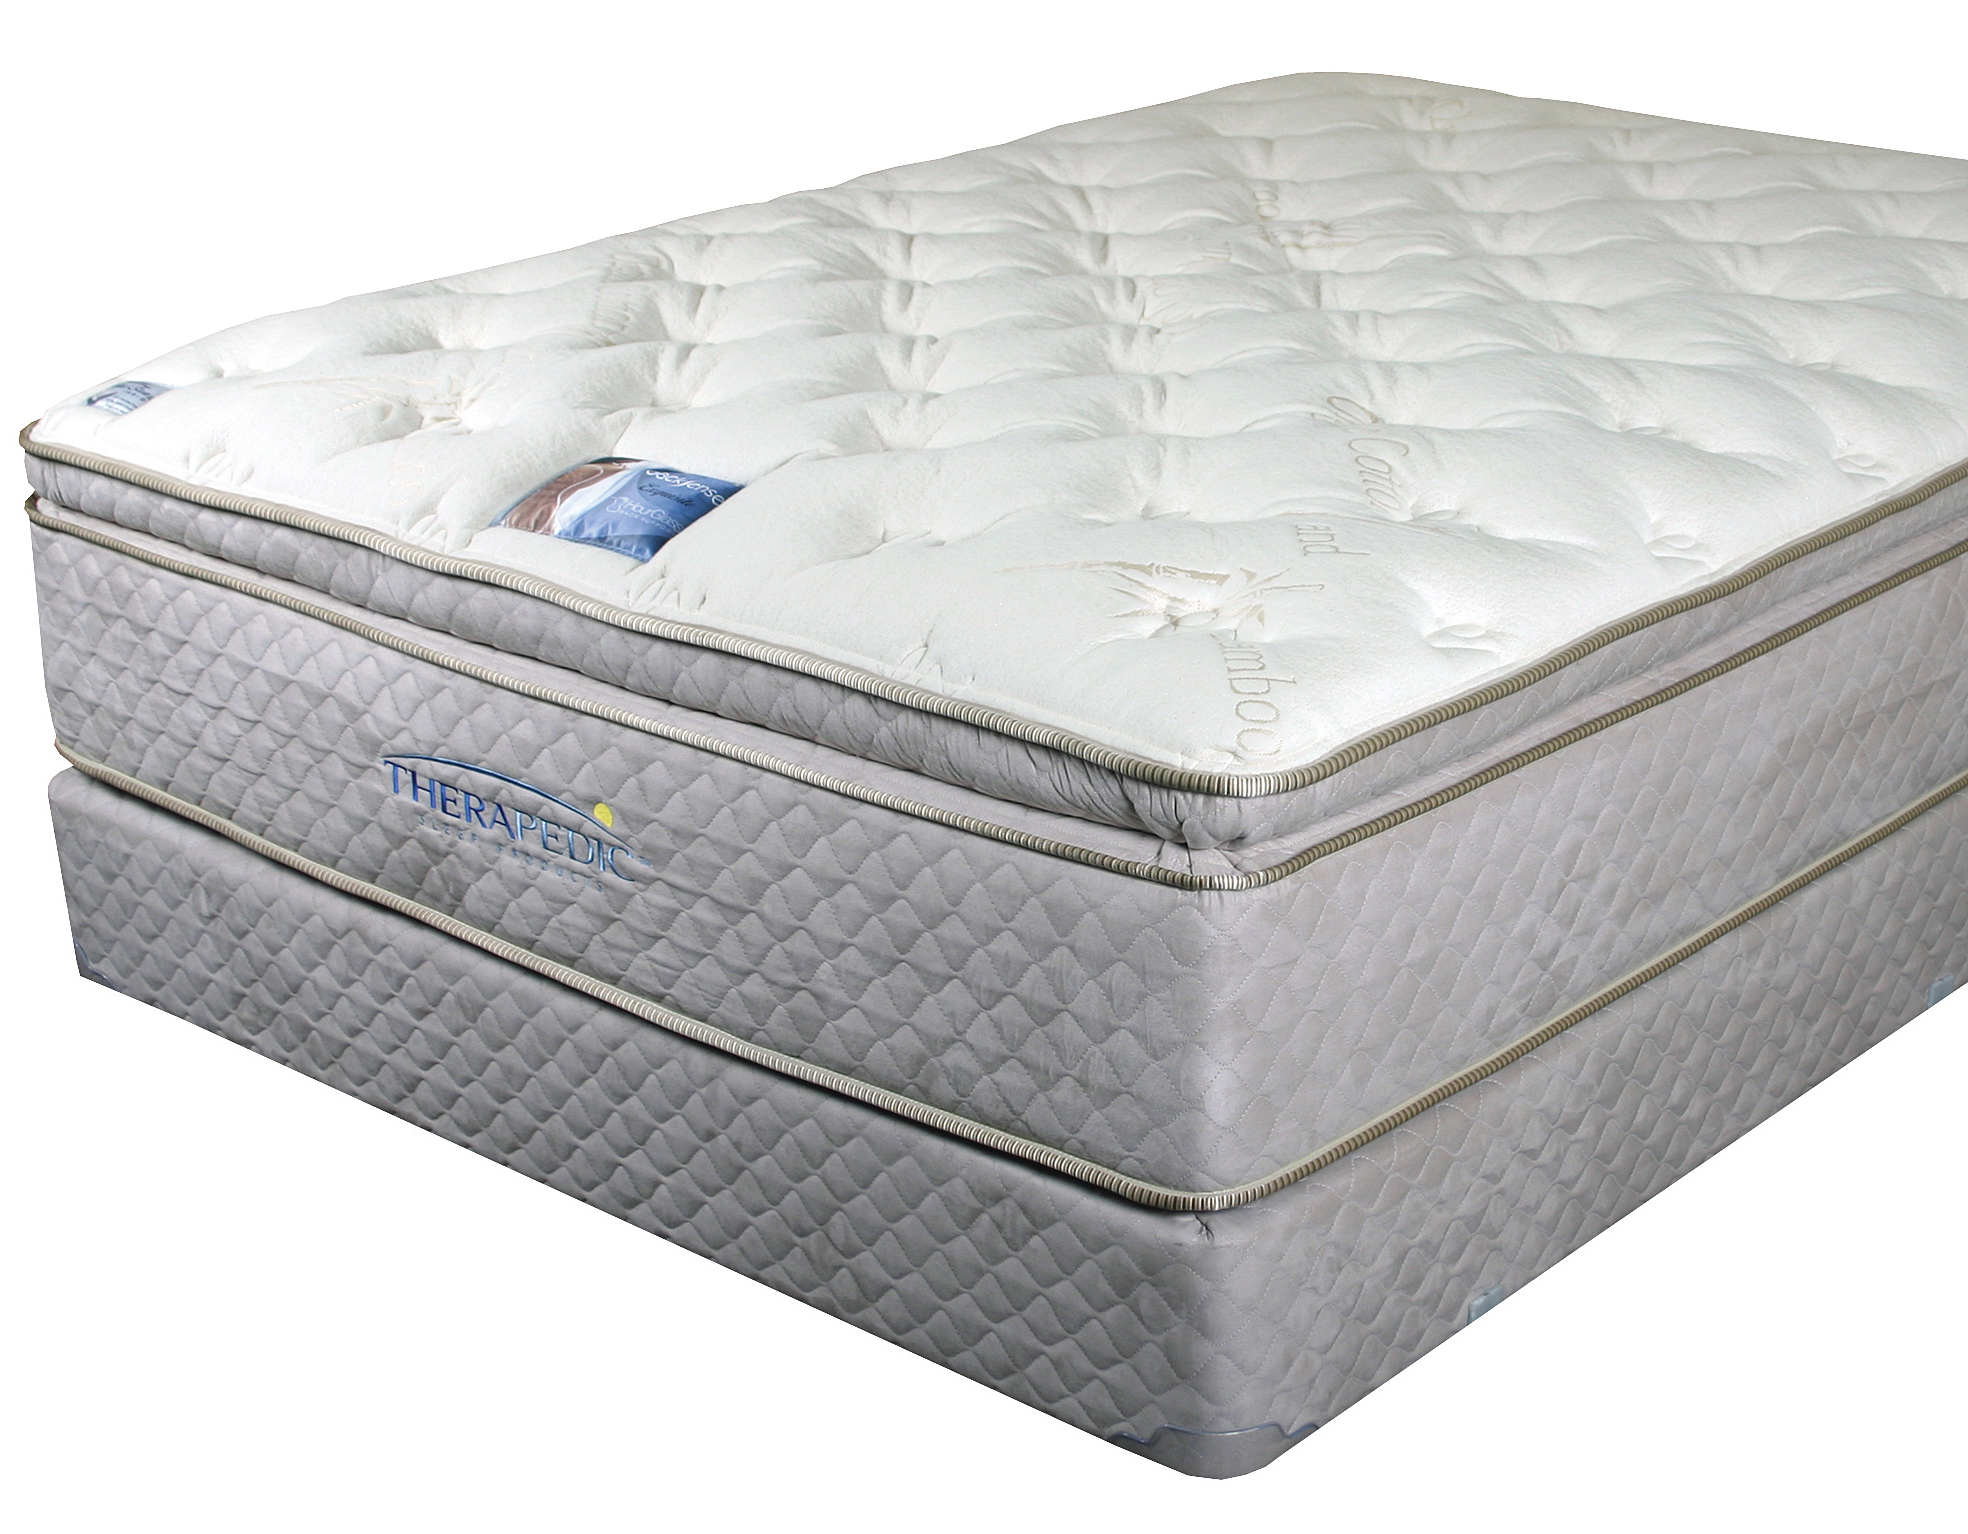 X Therapedic Backsense Elite Plush Latex Pillow Top